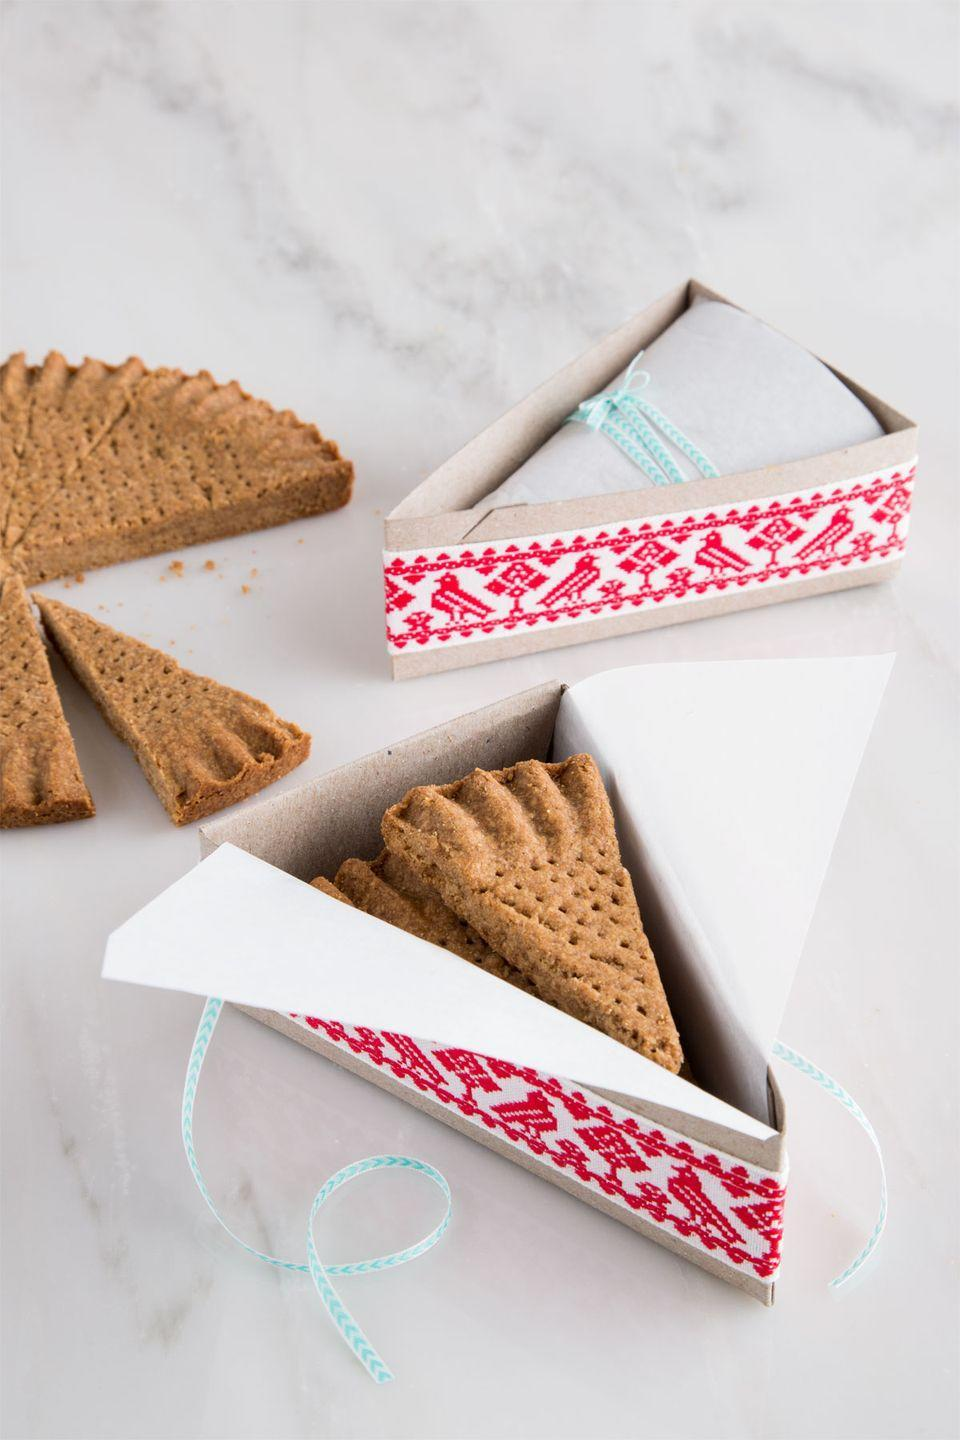 """<p>This pie-style shortbread bakes up quickly and makes an excellent present. </p><p><strong><a href=""""https://www.countryliving.com/food-drinks/recipes/a36900/spiced-shortbread/"""" rel=""""nofollow noopener"""" target=""""_blank"""" data-ylk=""""slk:Get the recipe"""" class=""""link rapid-noclick-resp"""">Get the recipe</a>.</strong></p><p><a class=""""link rapid-noclick-resp"""" href=""""https://www.amazon.com/Cuisinart-AMB-9RCK-Classic-Nonstick-Bakeware/dp/B0000ULZX6/?tag=syn-yahoo-20&ascsubtag=%5Bartid%7C10050.g.647%5Bsrc%7Cyahoo-us"""" rel=""""nofollow noopener"""" target=""""_blank"""" data-ylk=""""slk:SHOP CAKE PANS"""">SHOP CAKE PANS</a></p>"""